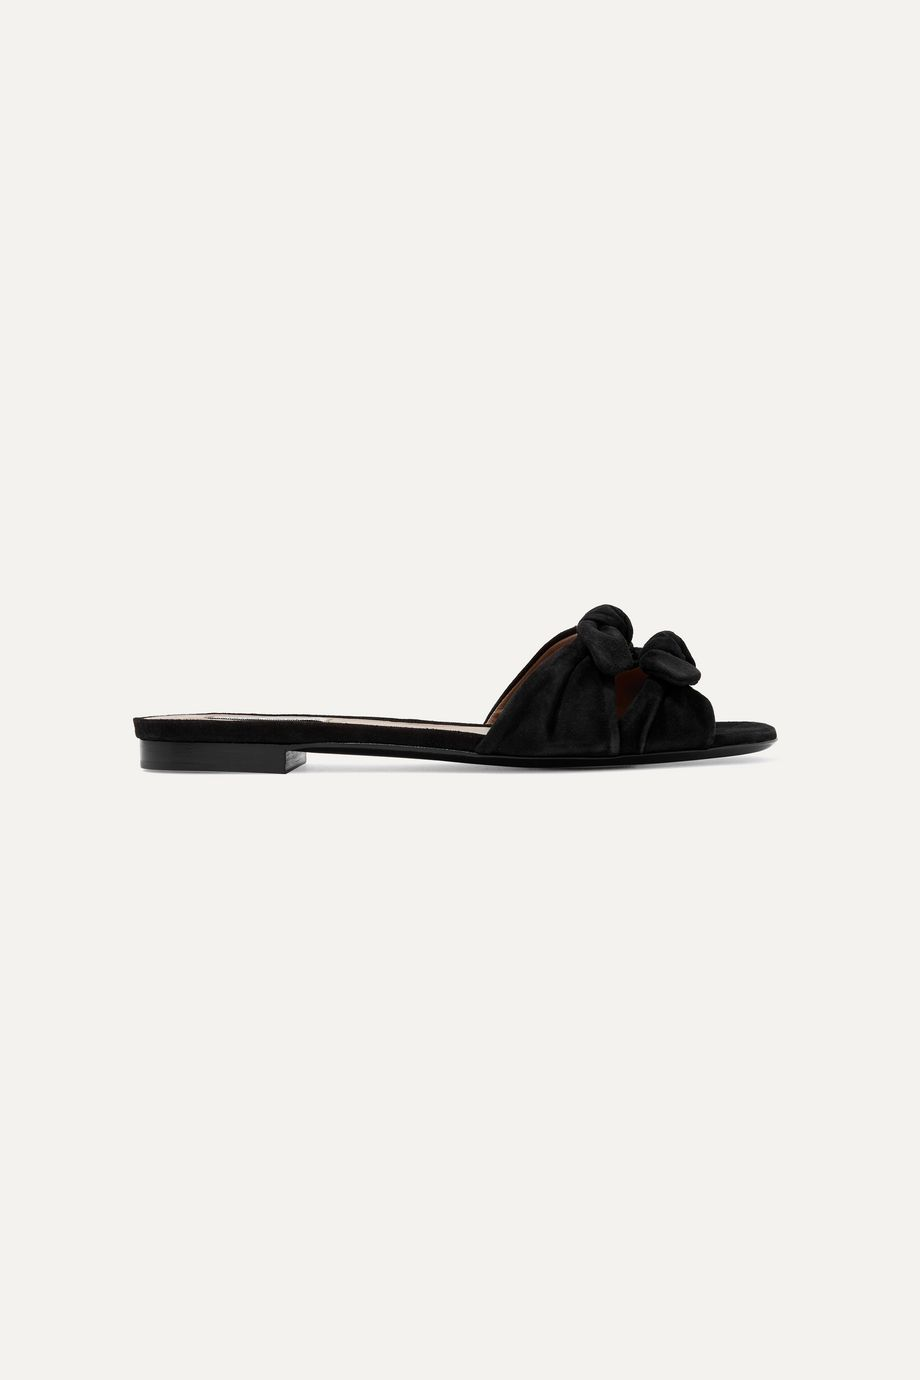 Tabitha Simmons Cleo bow-embellished suede slides